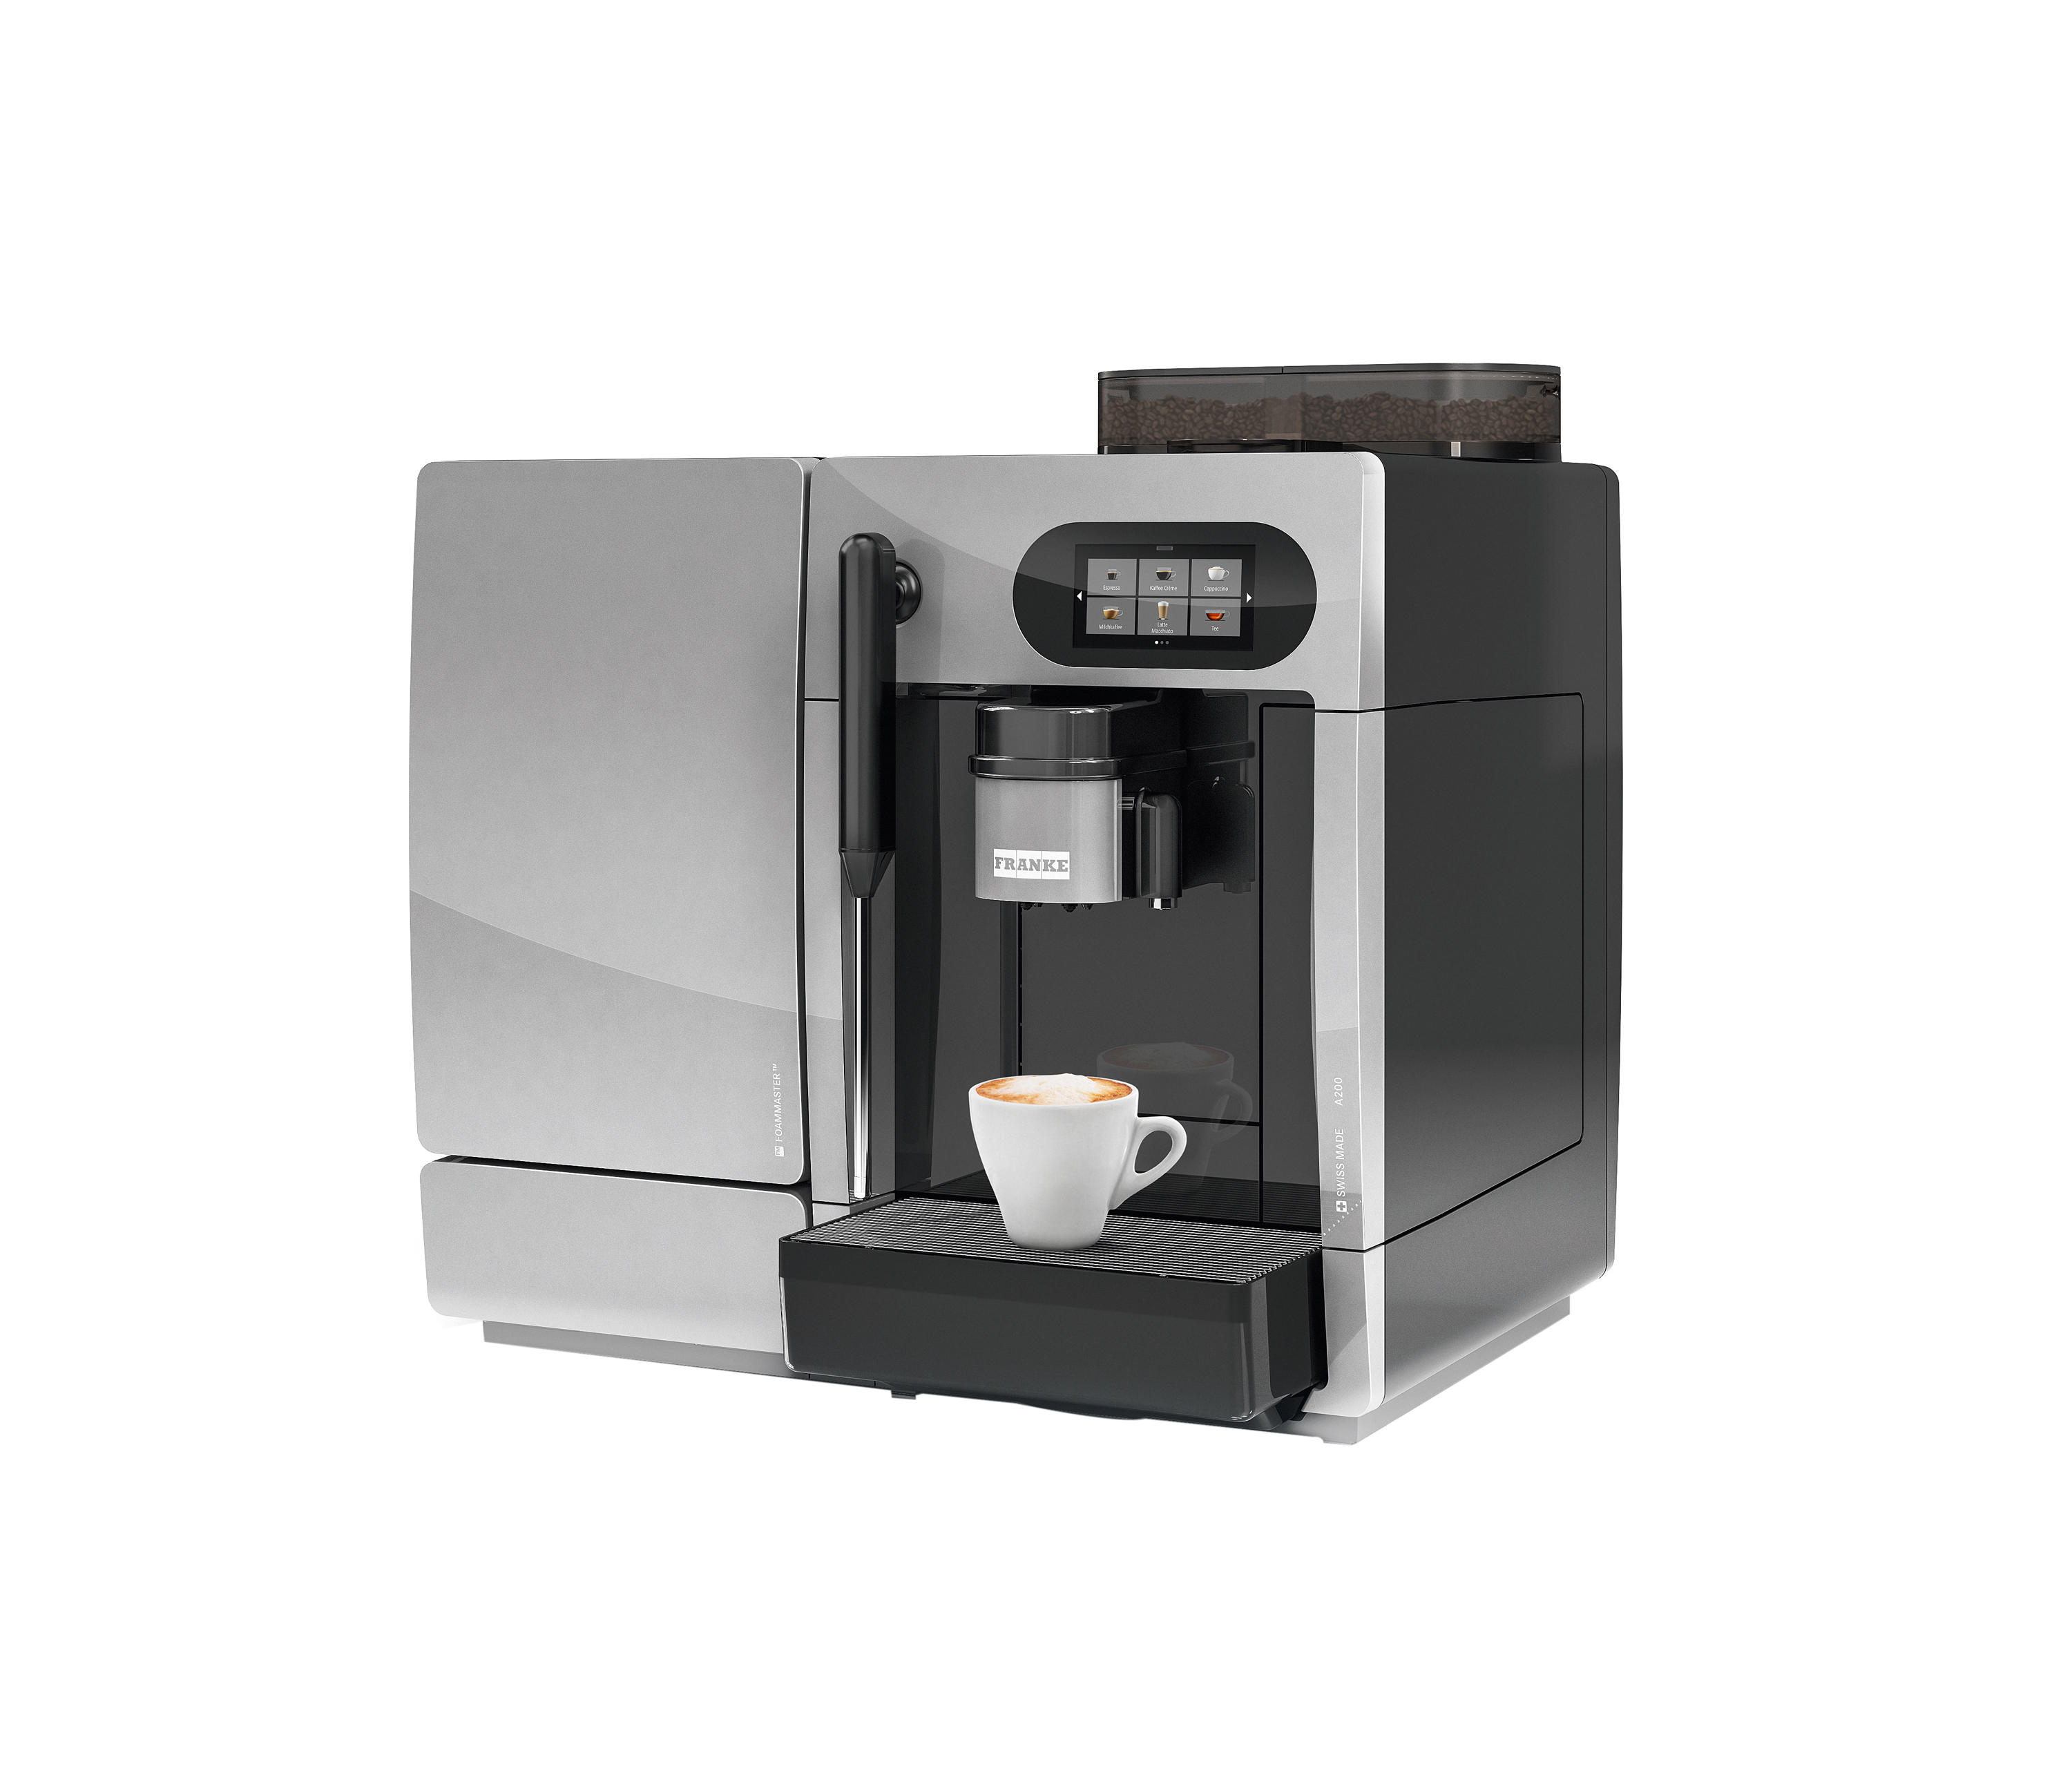 Franke Coffee Systems A200 Coffee Machines From Franke Kaffeemaschinen Ag Architonic